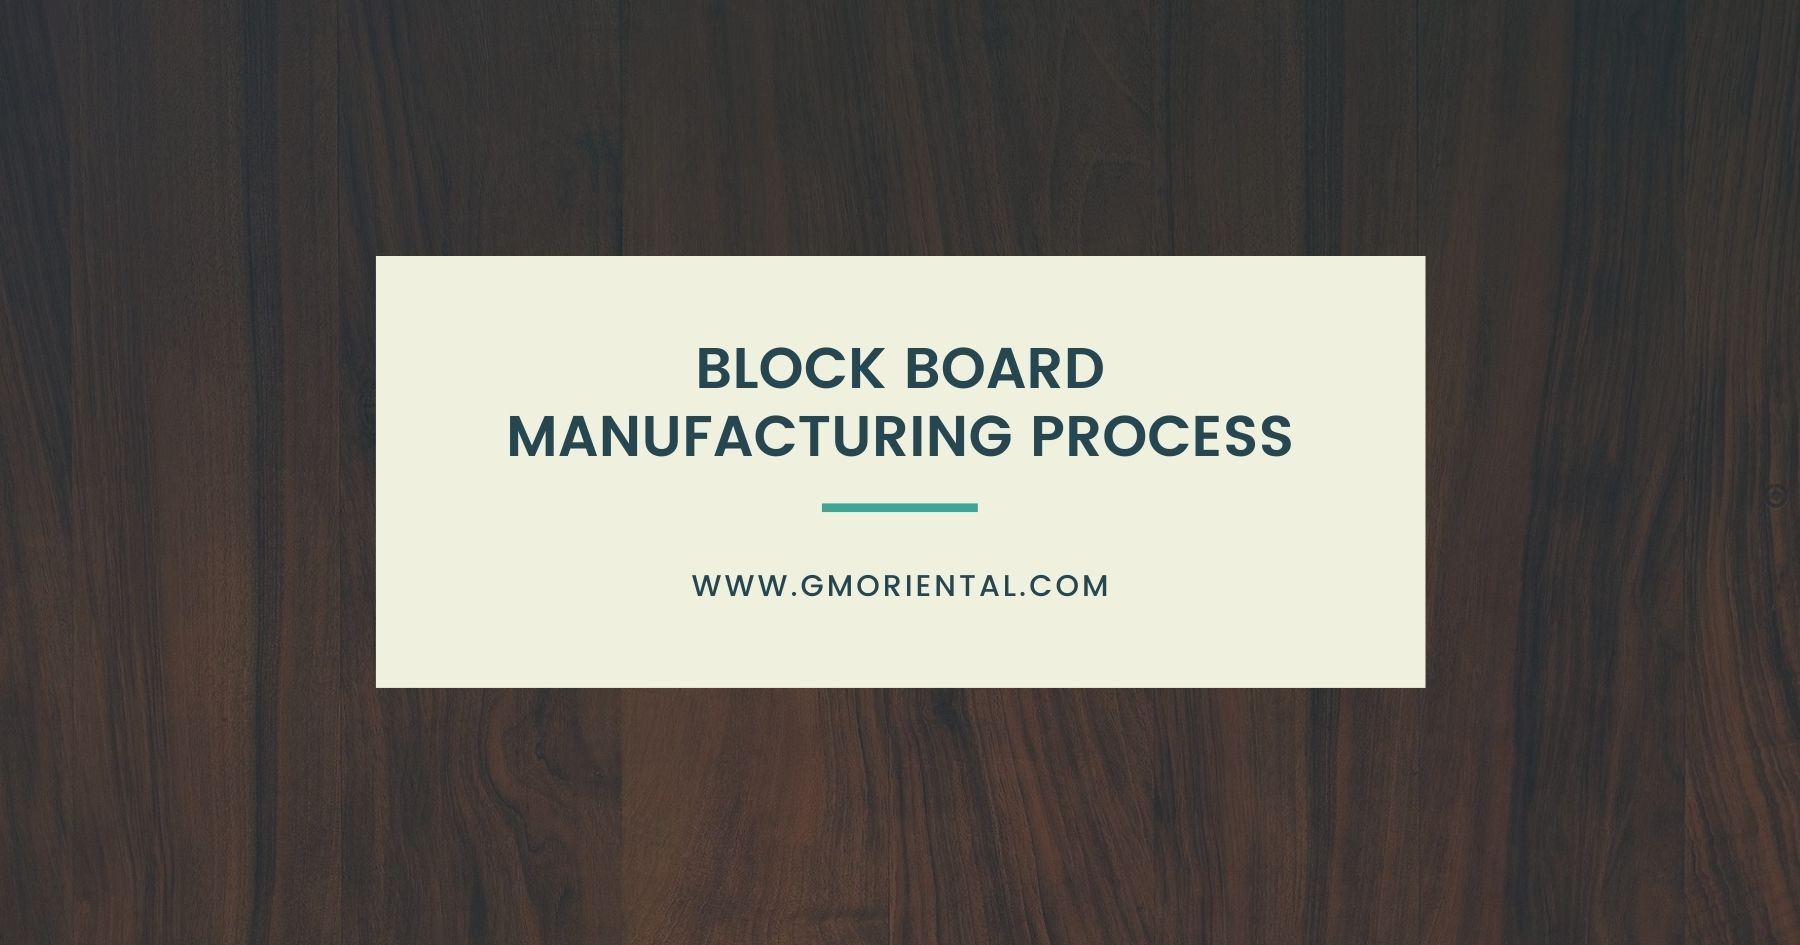 Block Board Manufacturing Process: Step-by-Step Guide